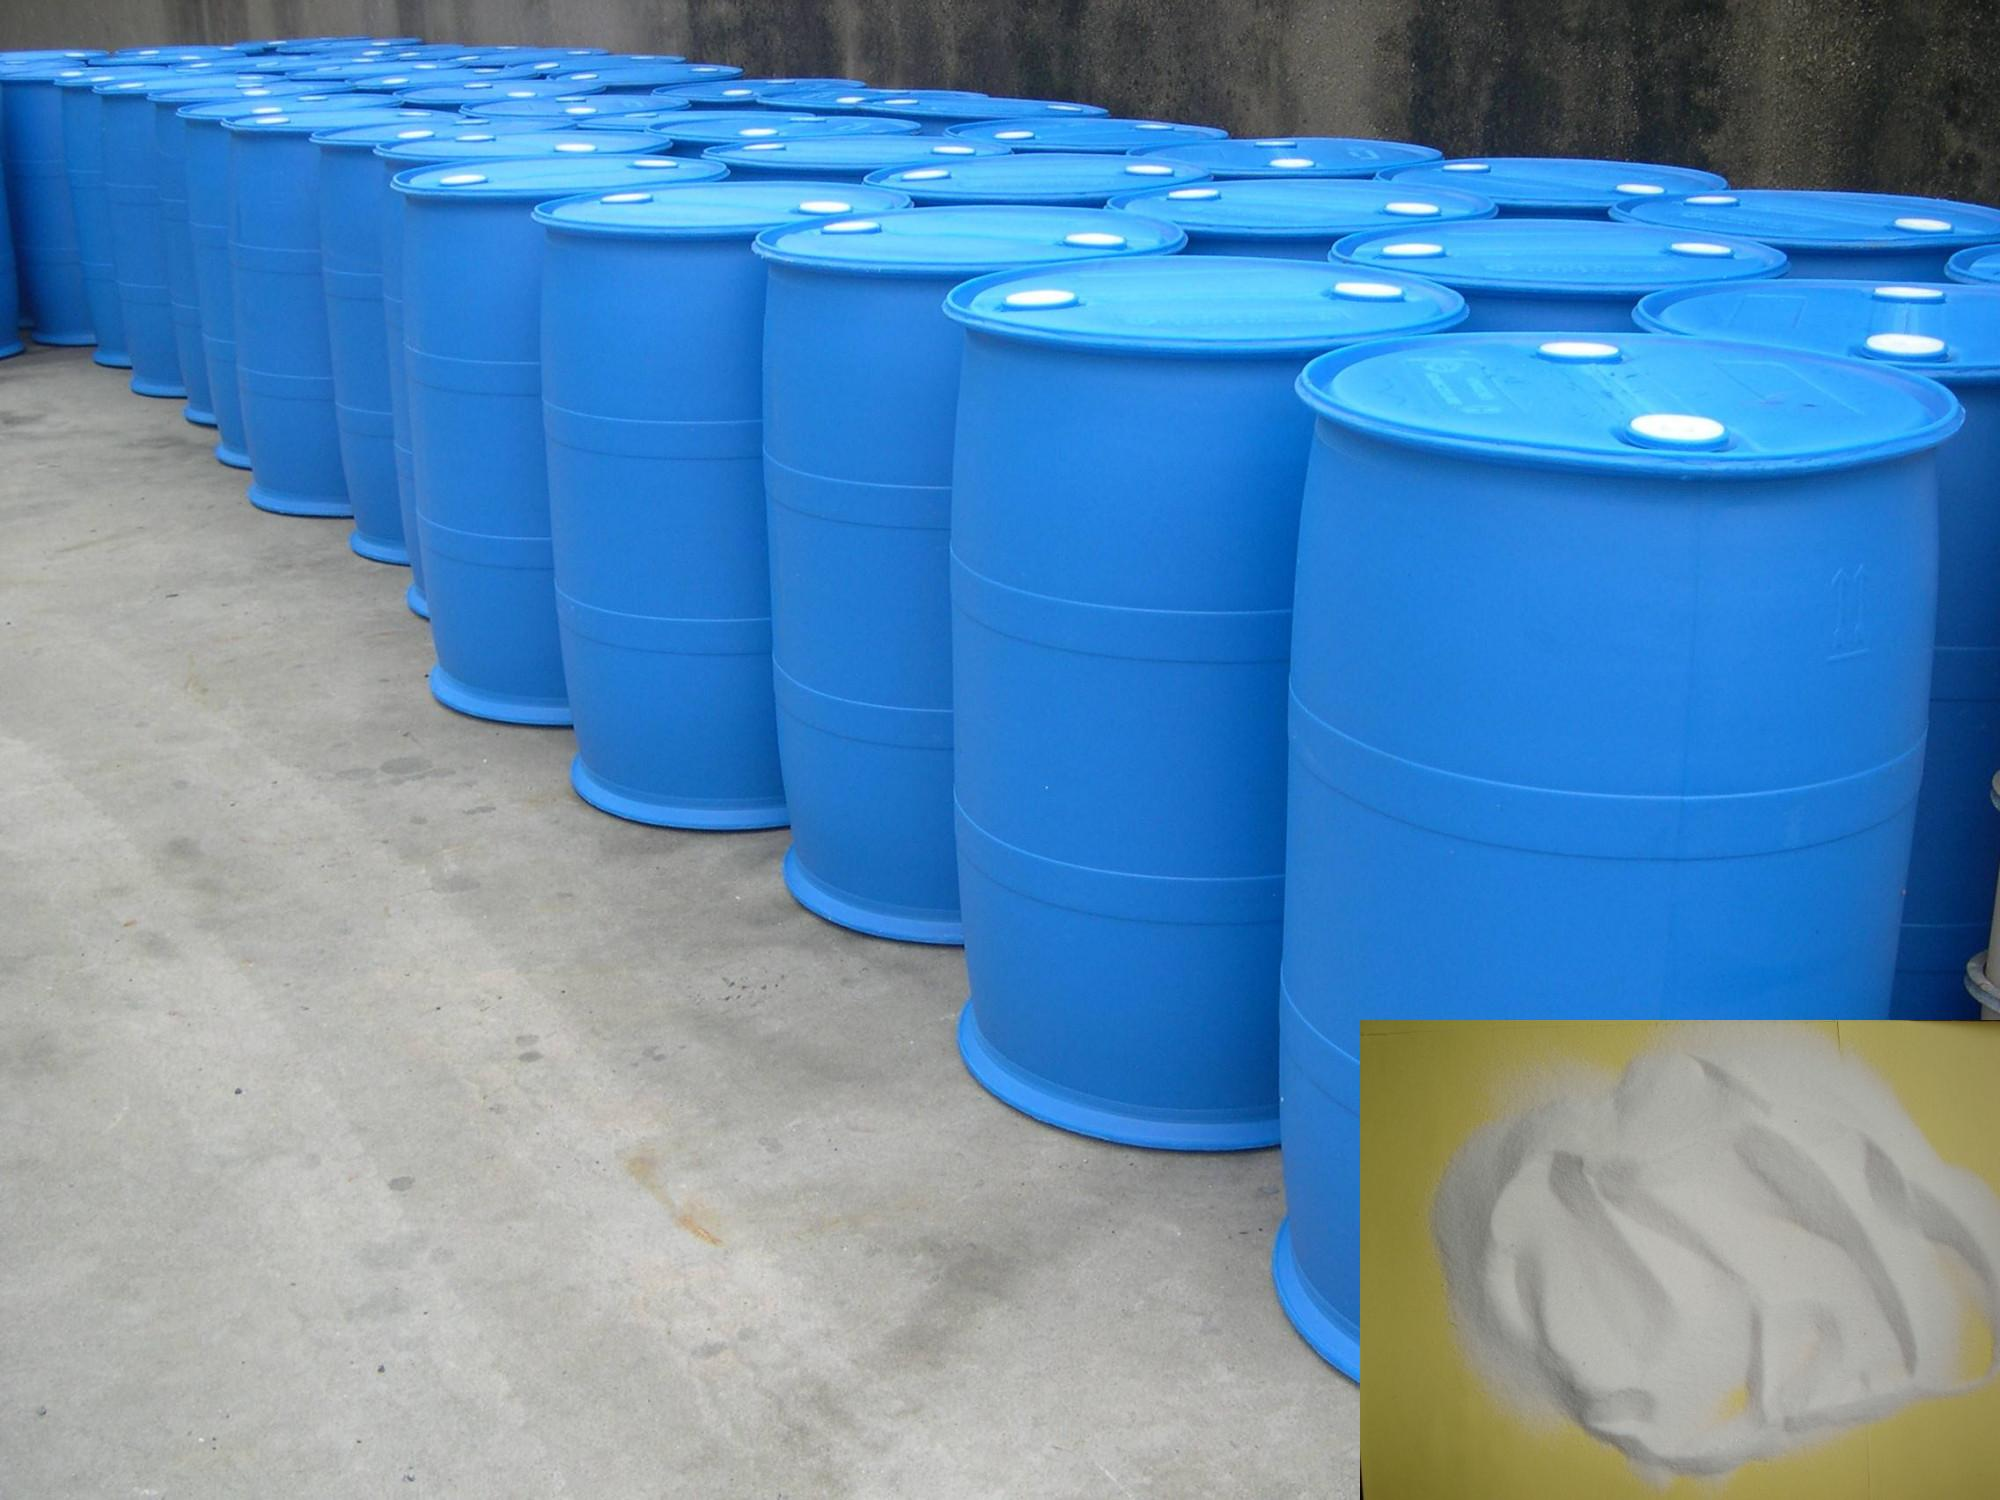 Transparent solution industrial grade potassium formate 74% for oil drilling